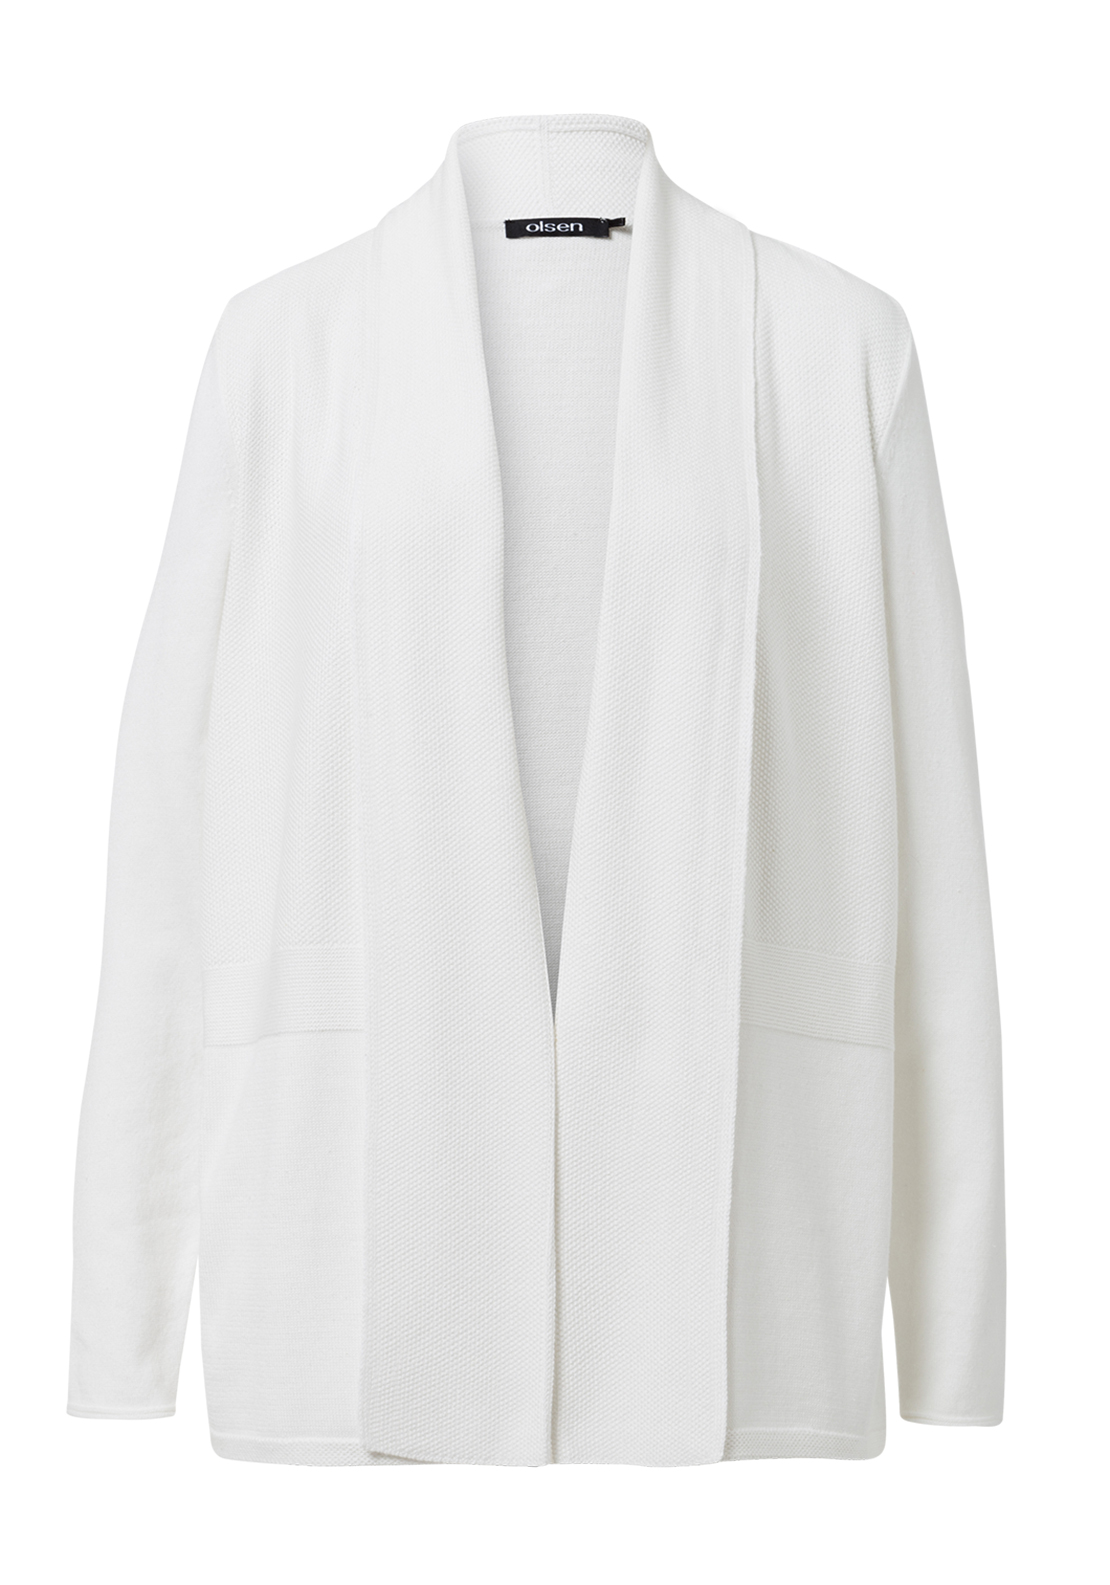 Olsen Cotton Blend Cardigan, Ivory